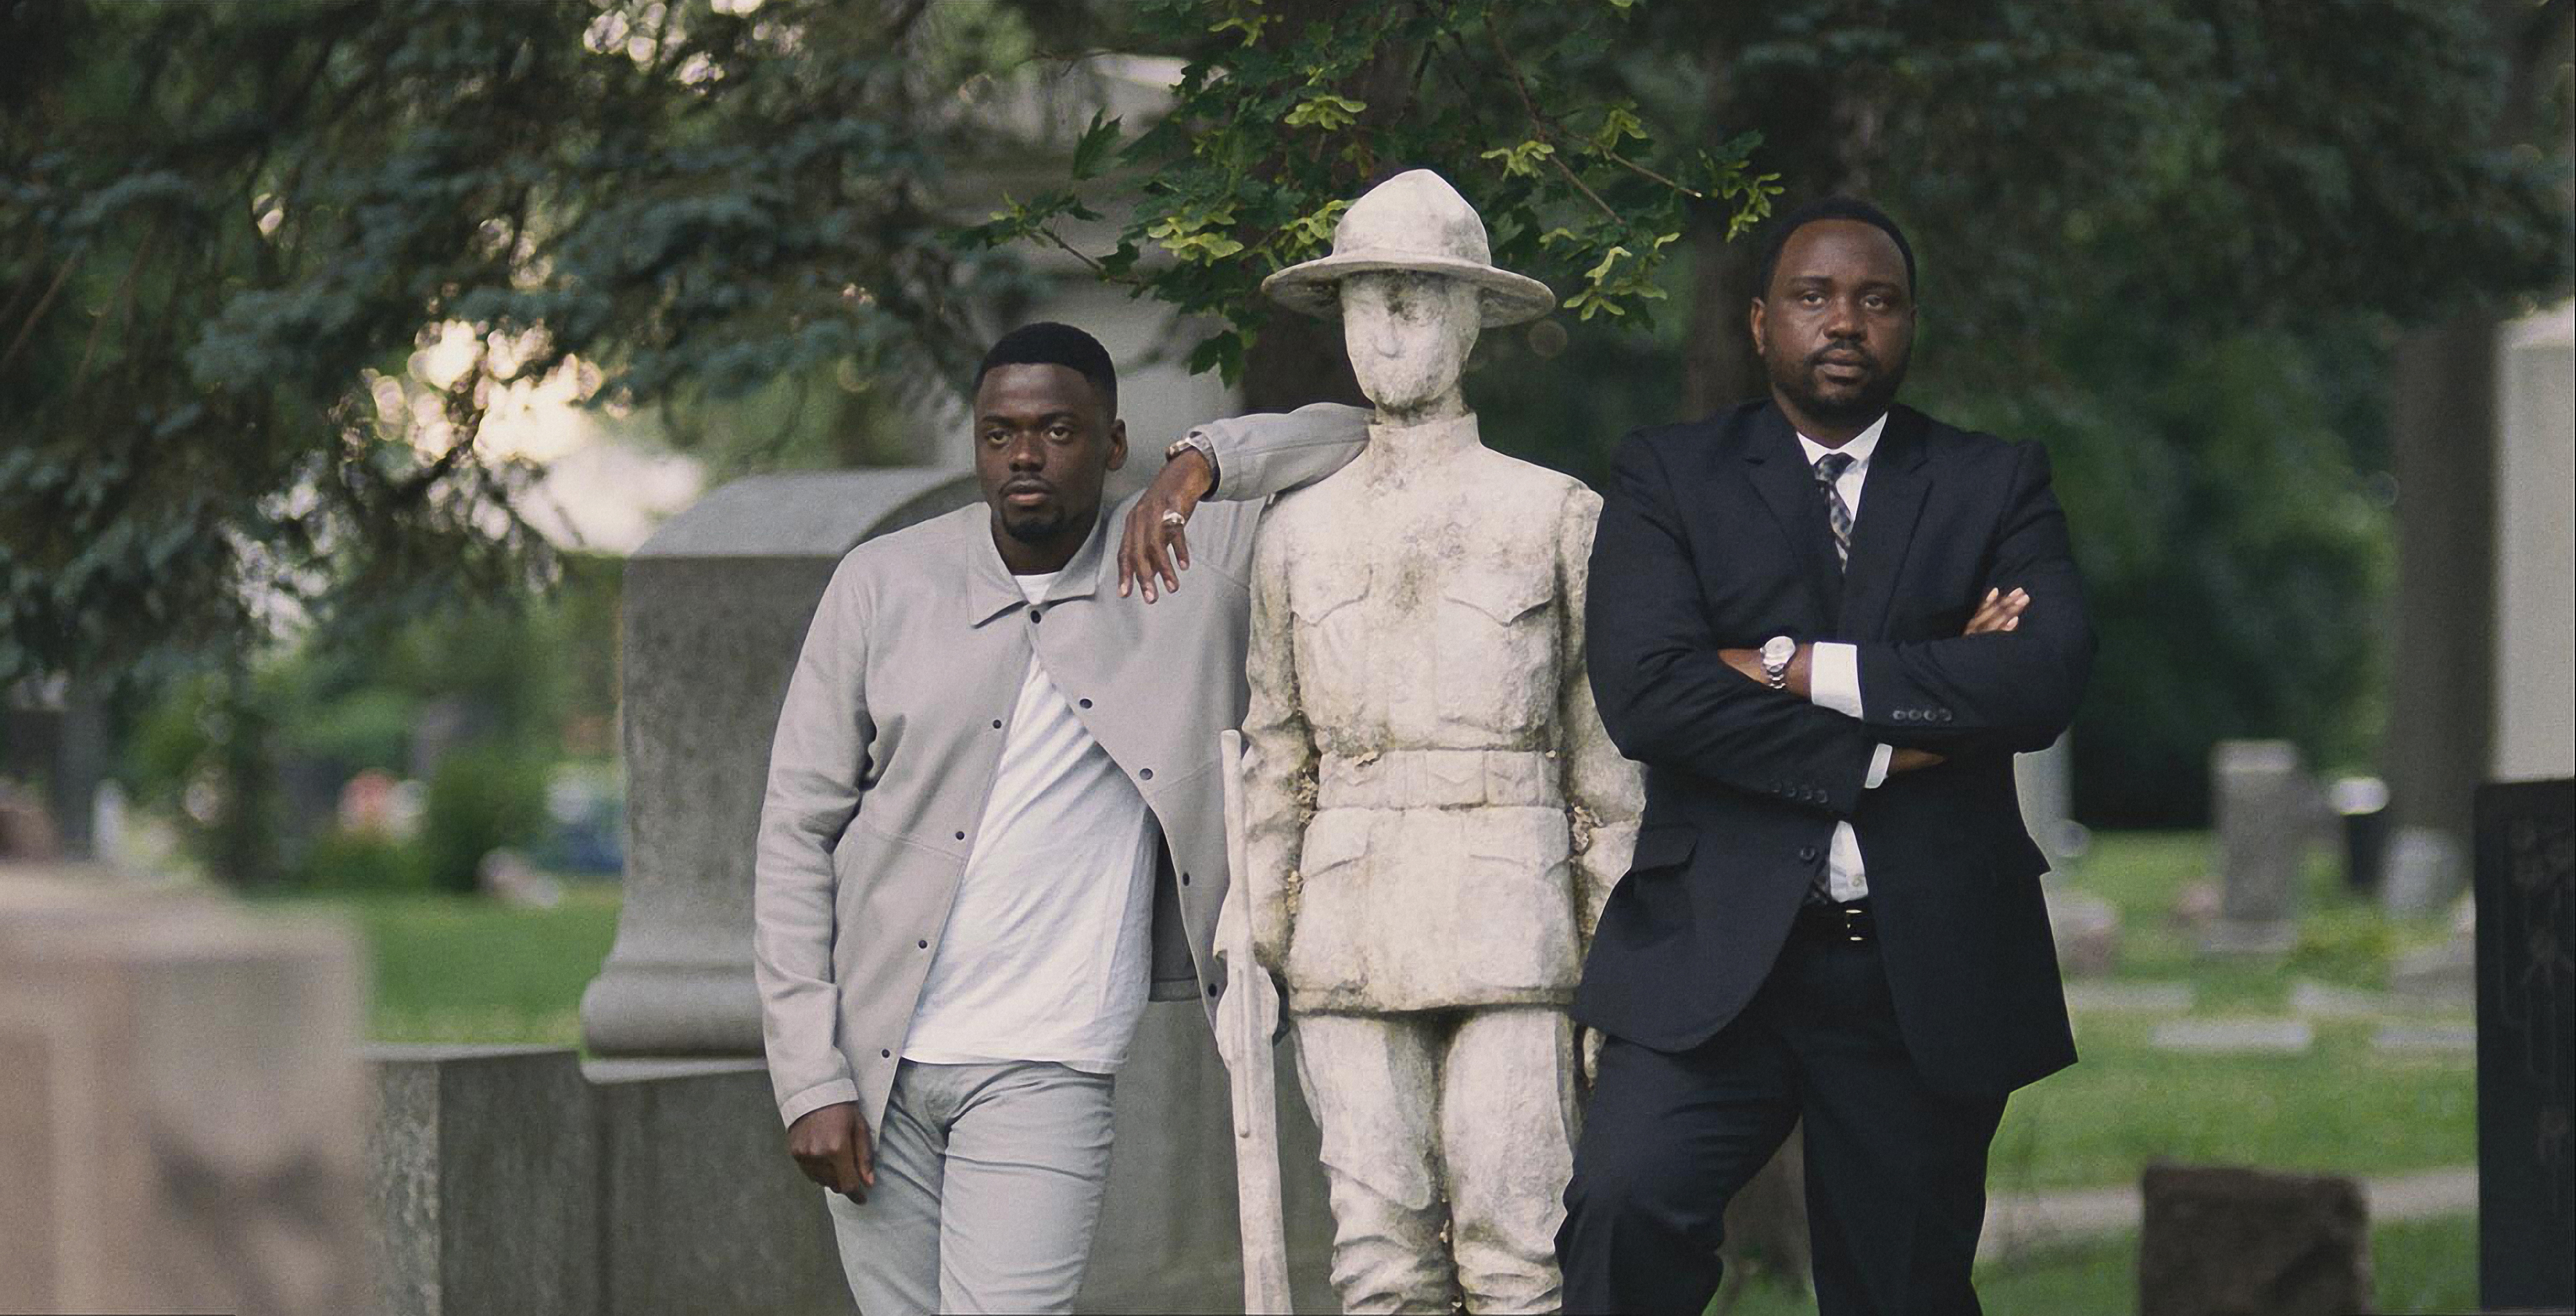 Daniel Kaluuya and Brian Tyree Henry